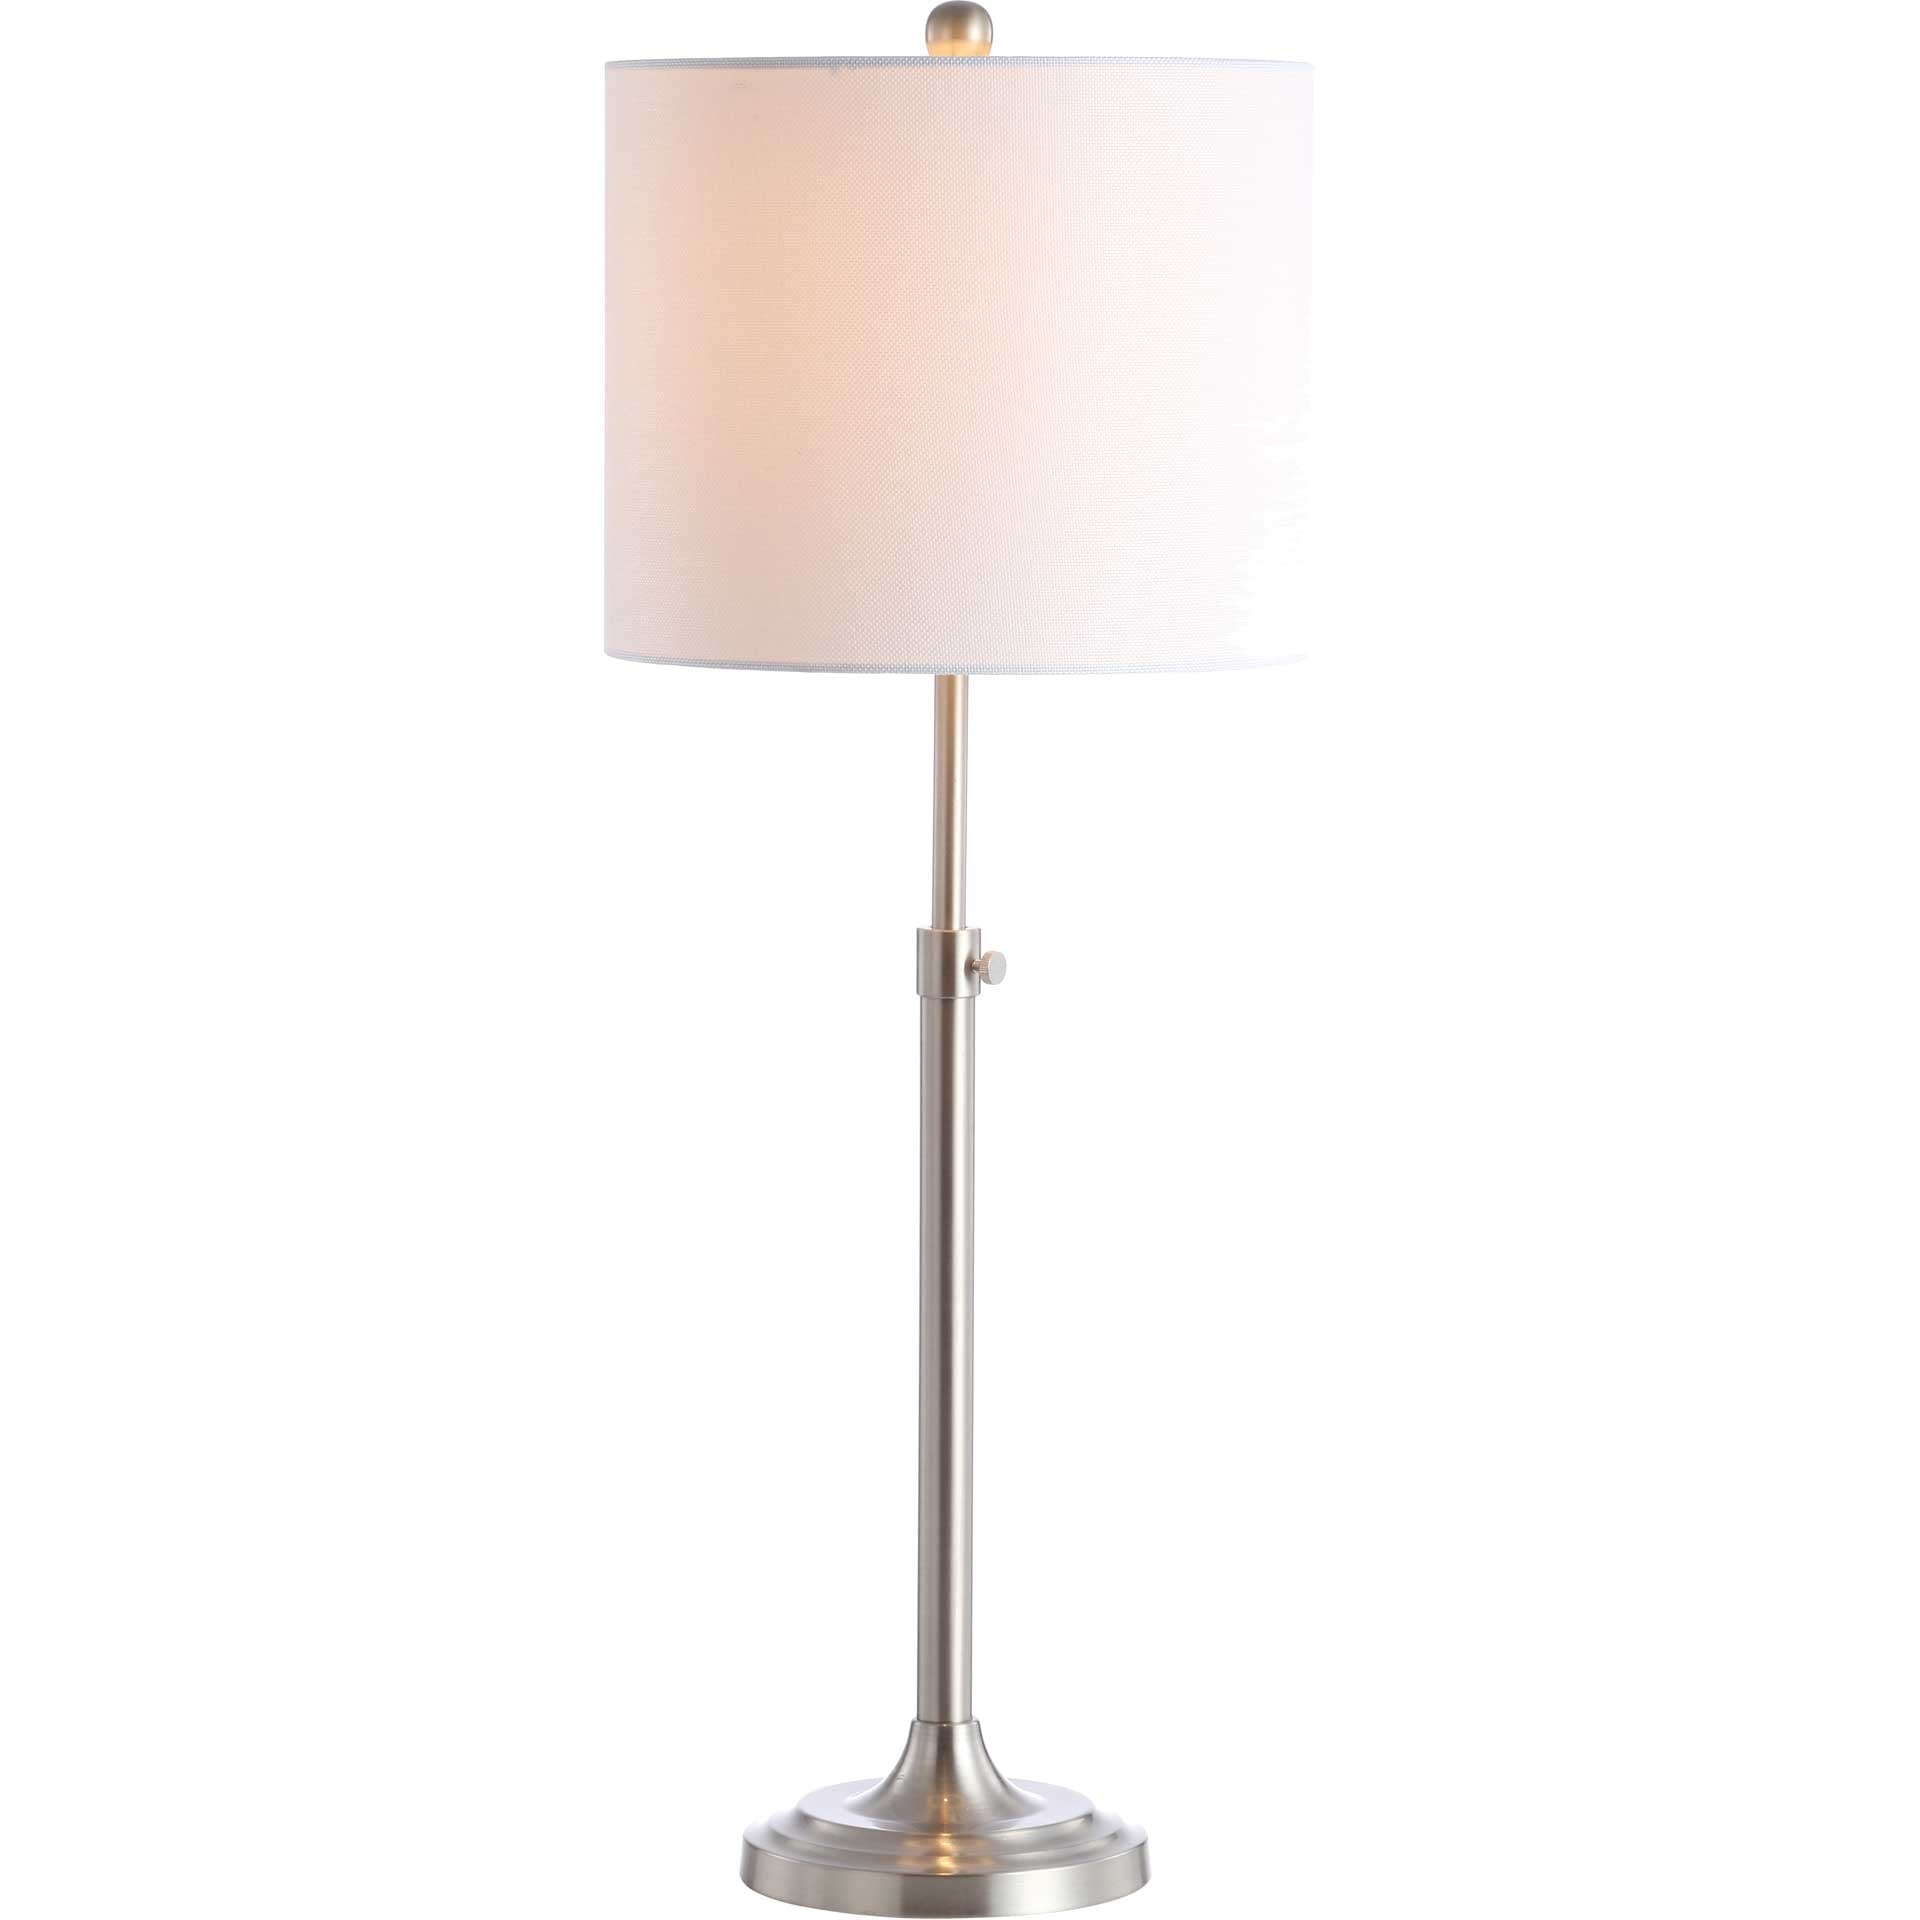 Weston Table Lamp Brush Nickel